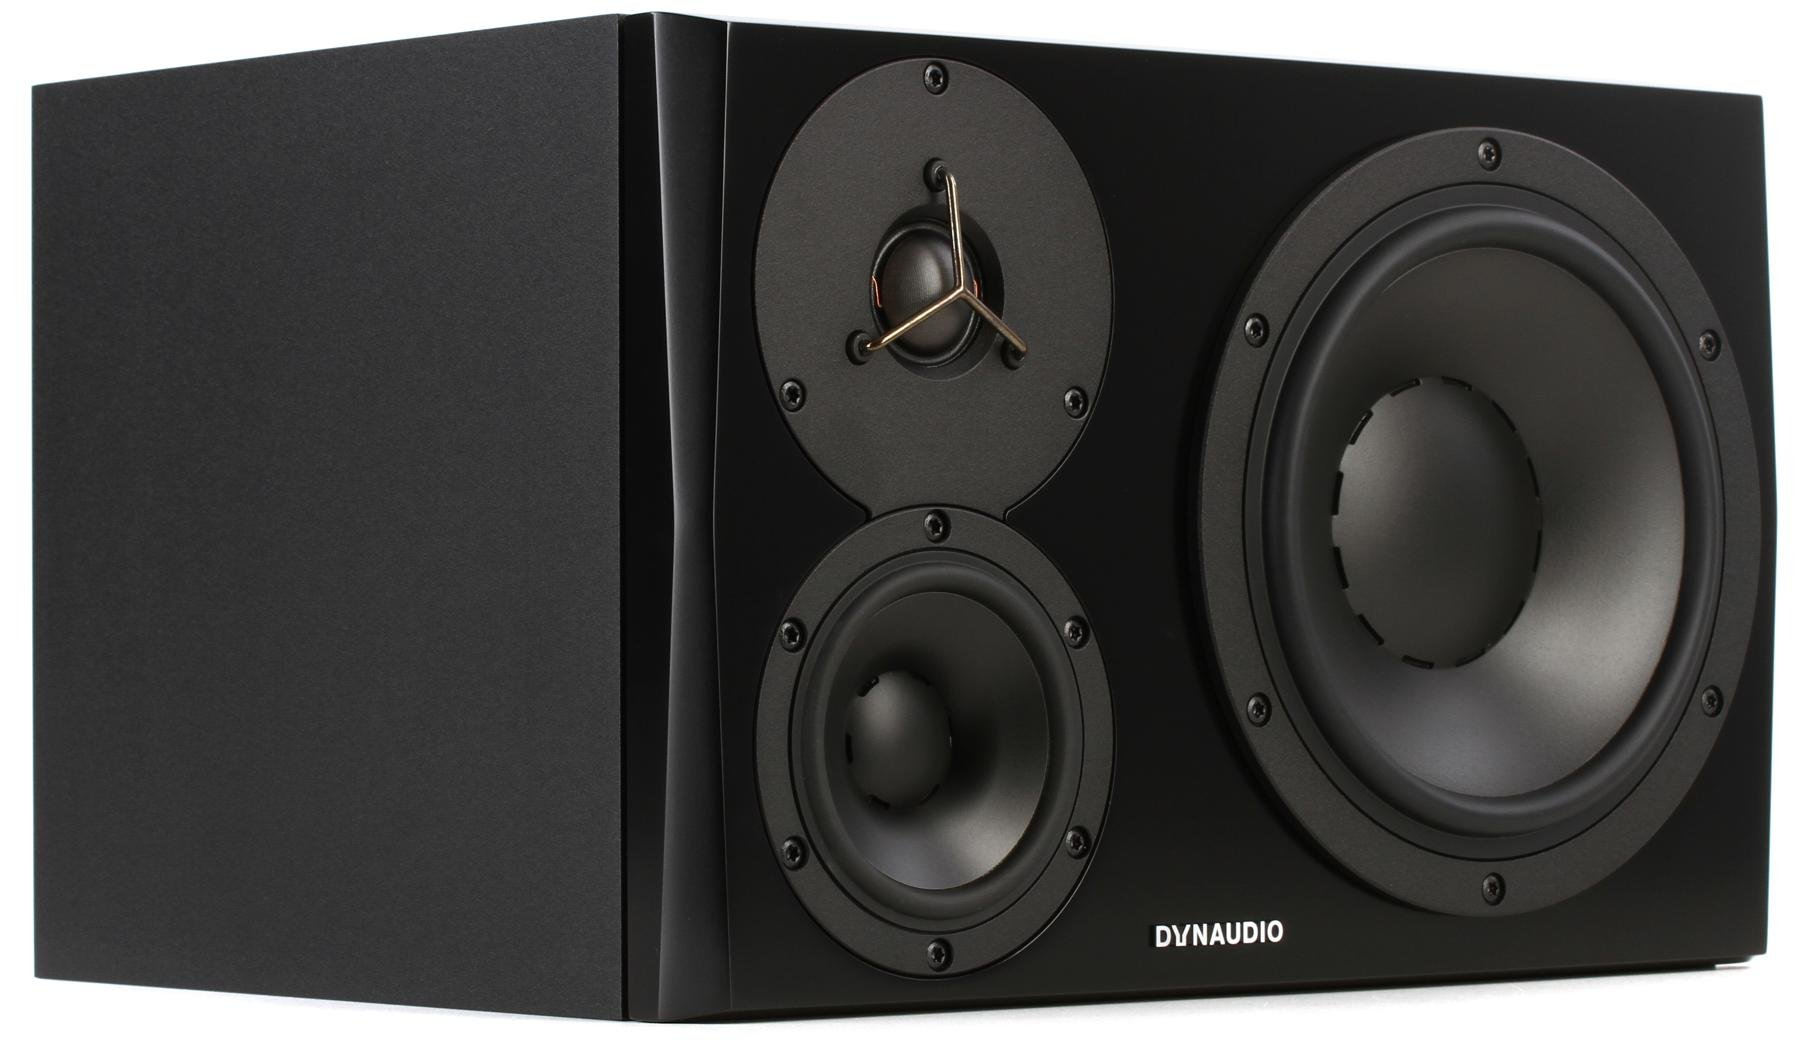 Dynaudio LYD 48 3-way Powered Studio Monitor (Left Side) - Black image